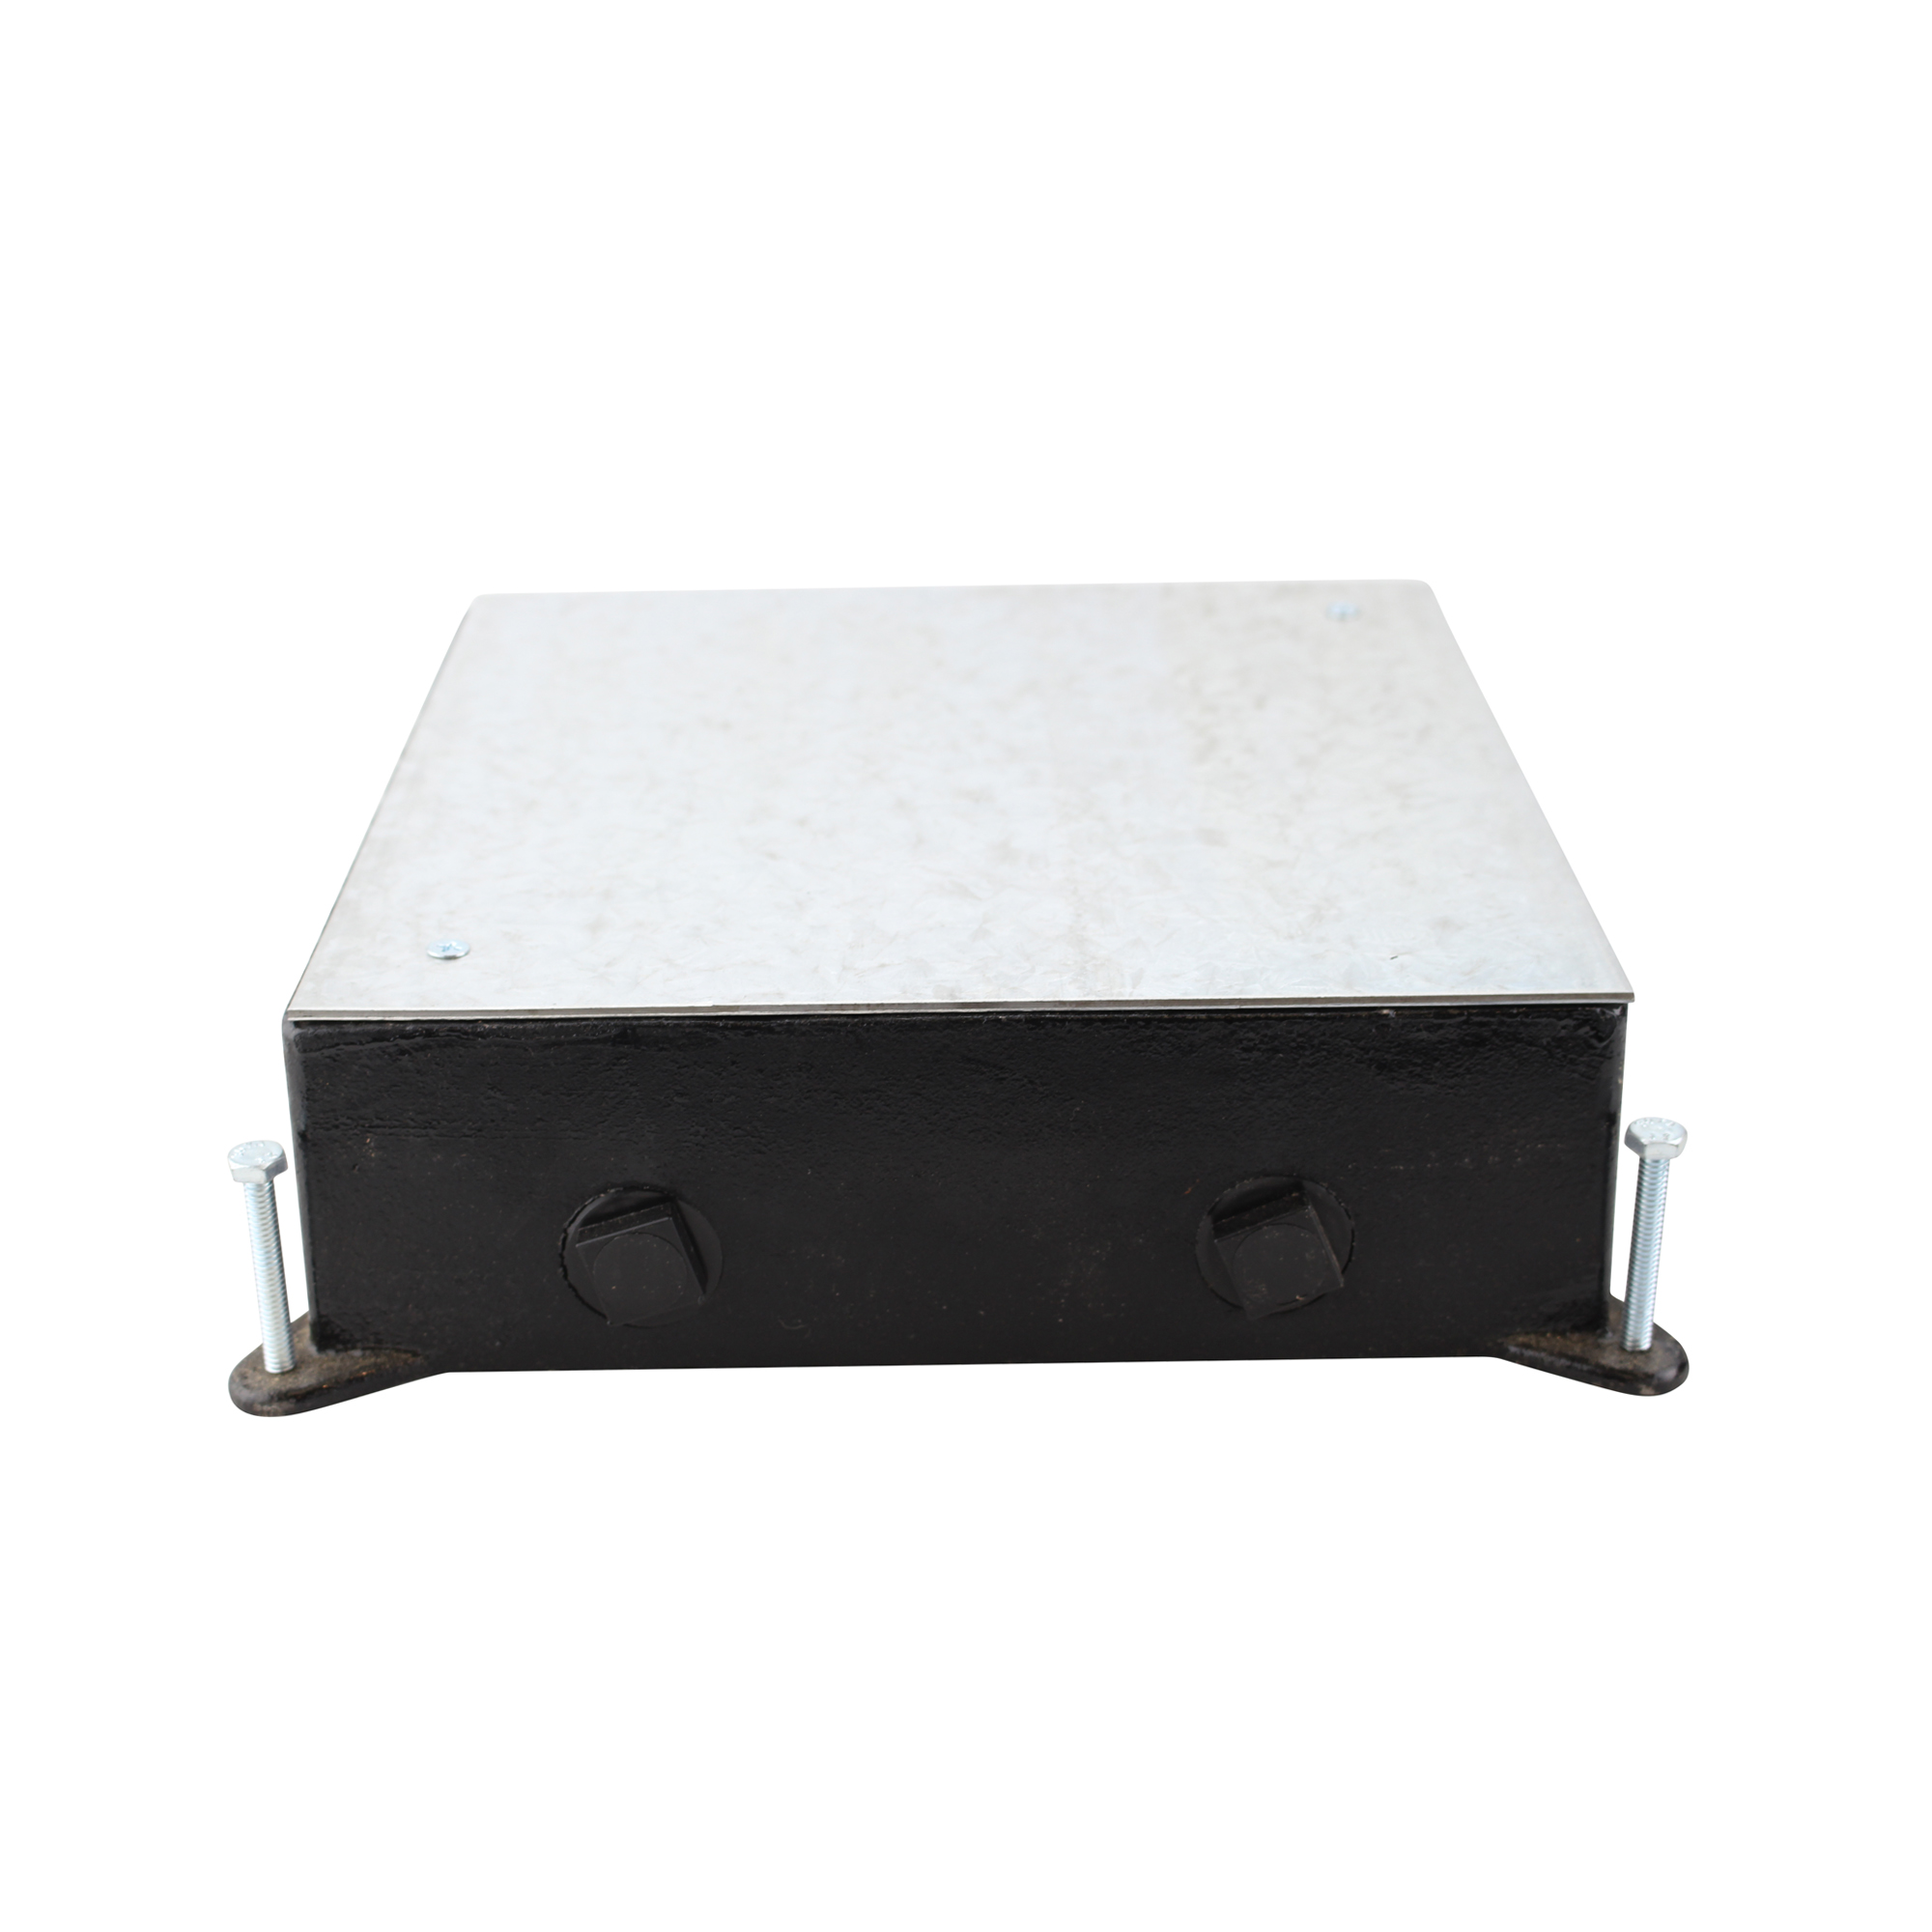 box newsize essential size floor hubbell white steel hardware thomas floors city betts kit outlet